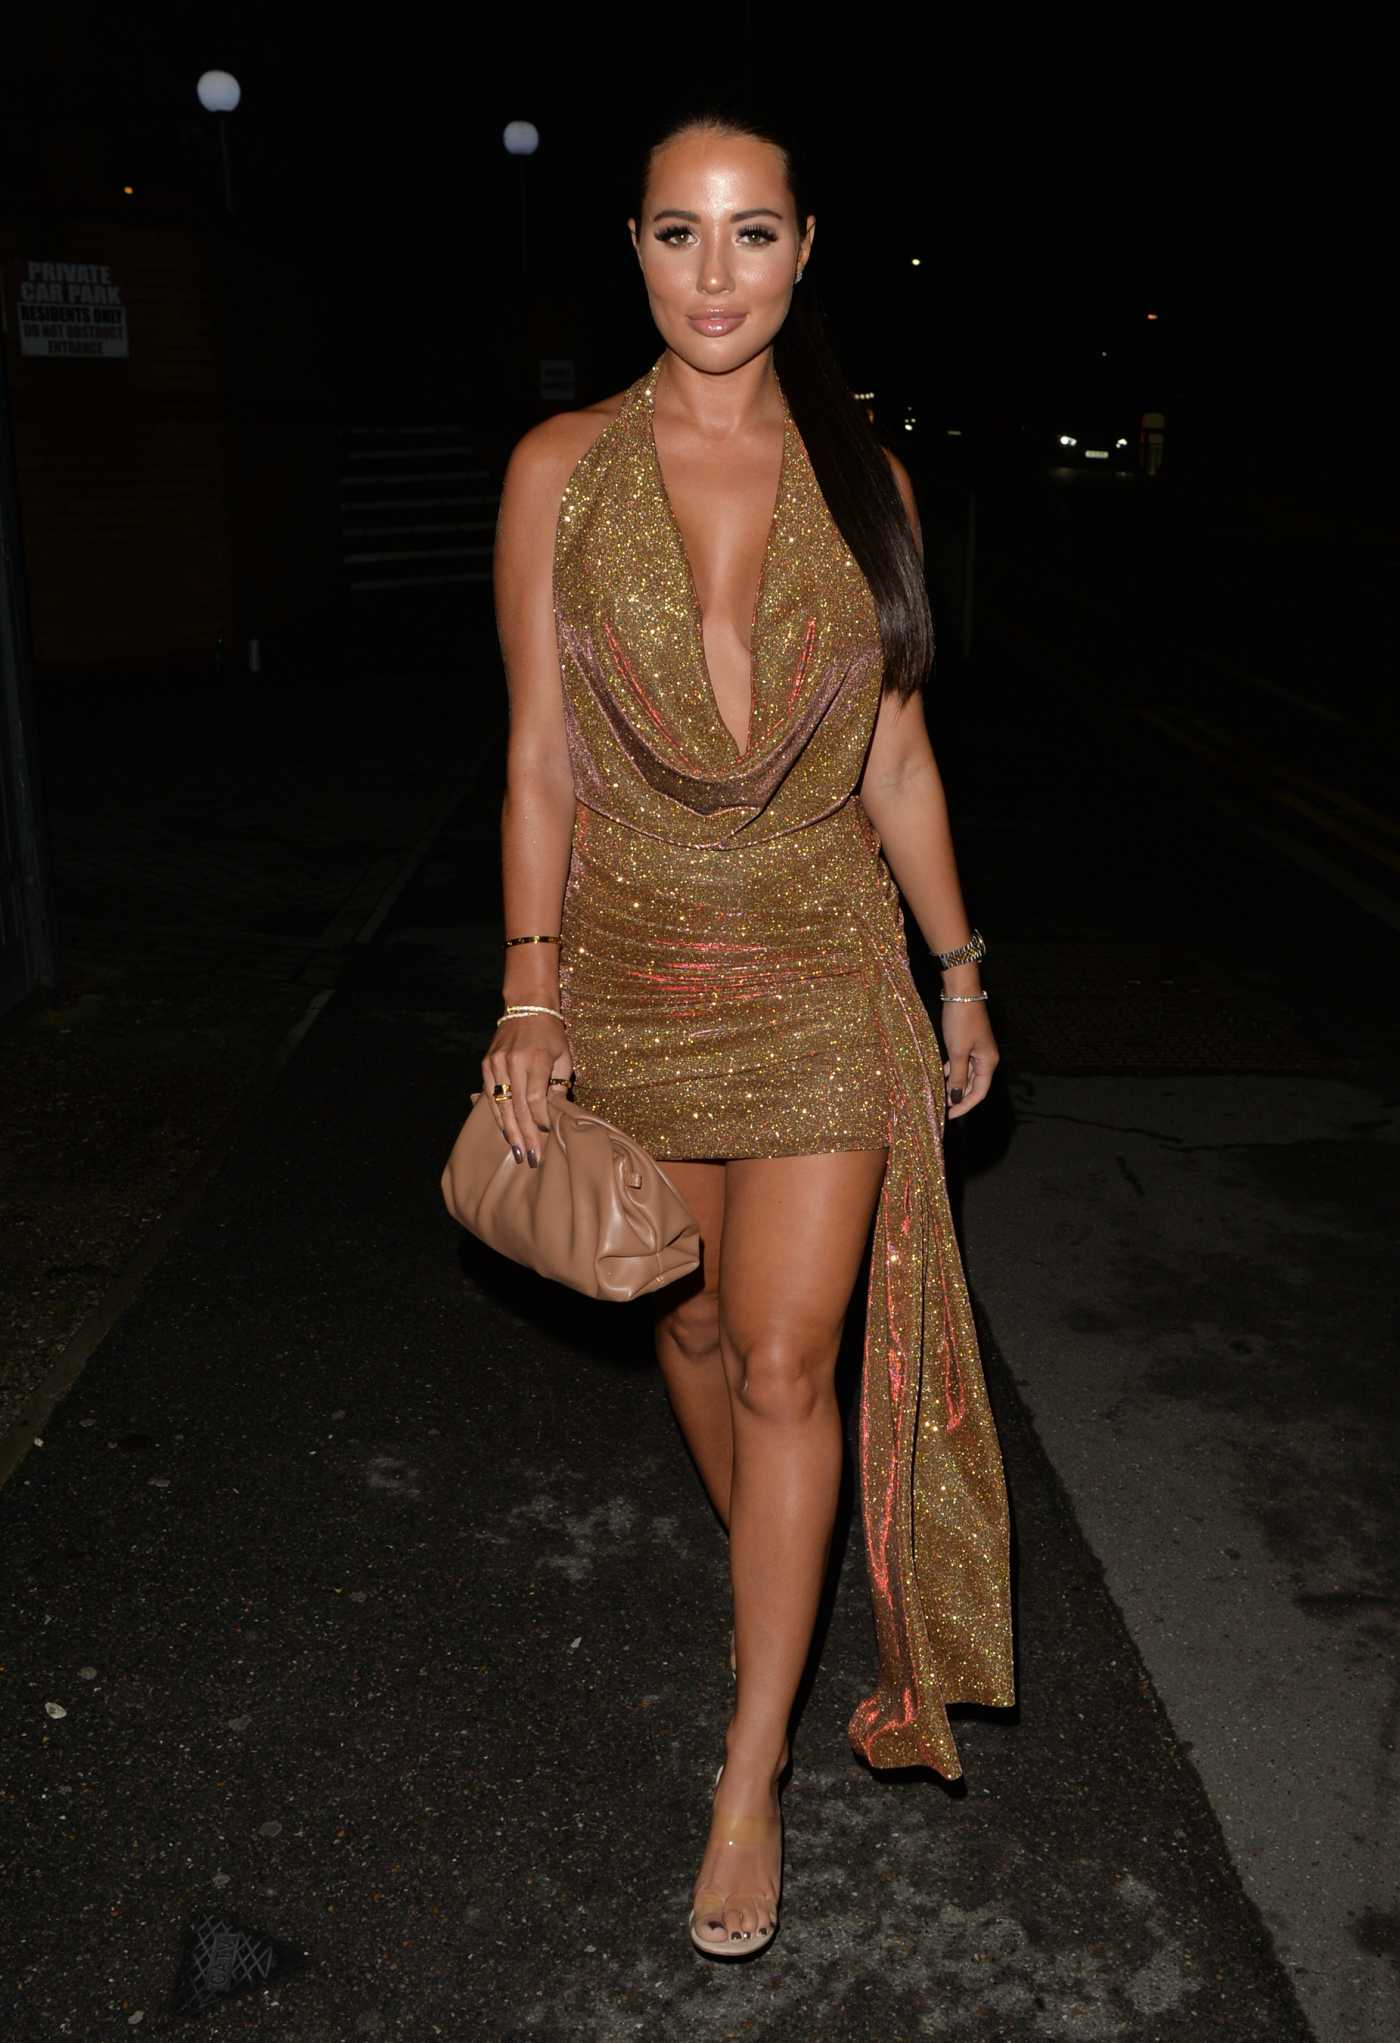 Yazmin Oukhellou in a Gold Dress Arrives at the Gallery Brasserie in London 08/15/2020